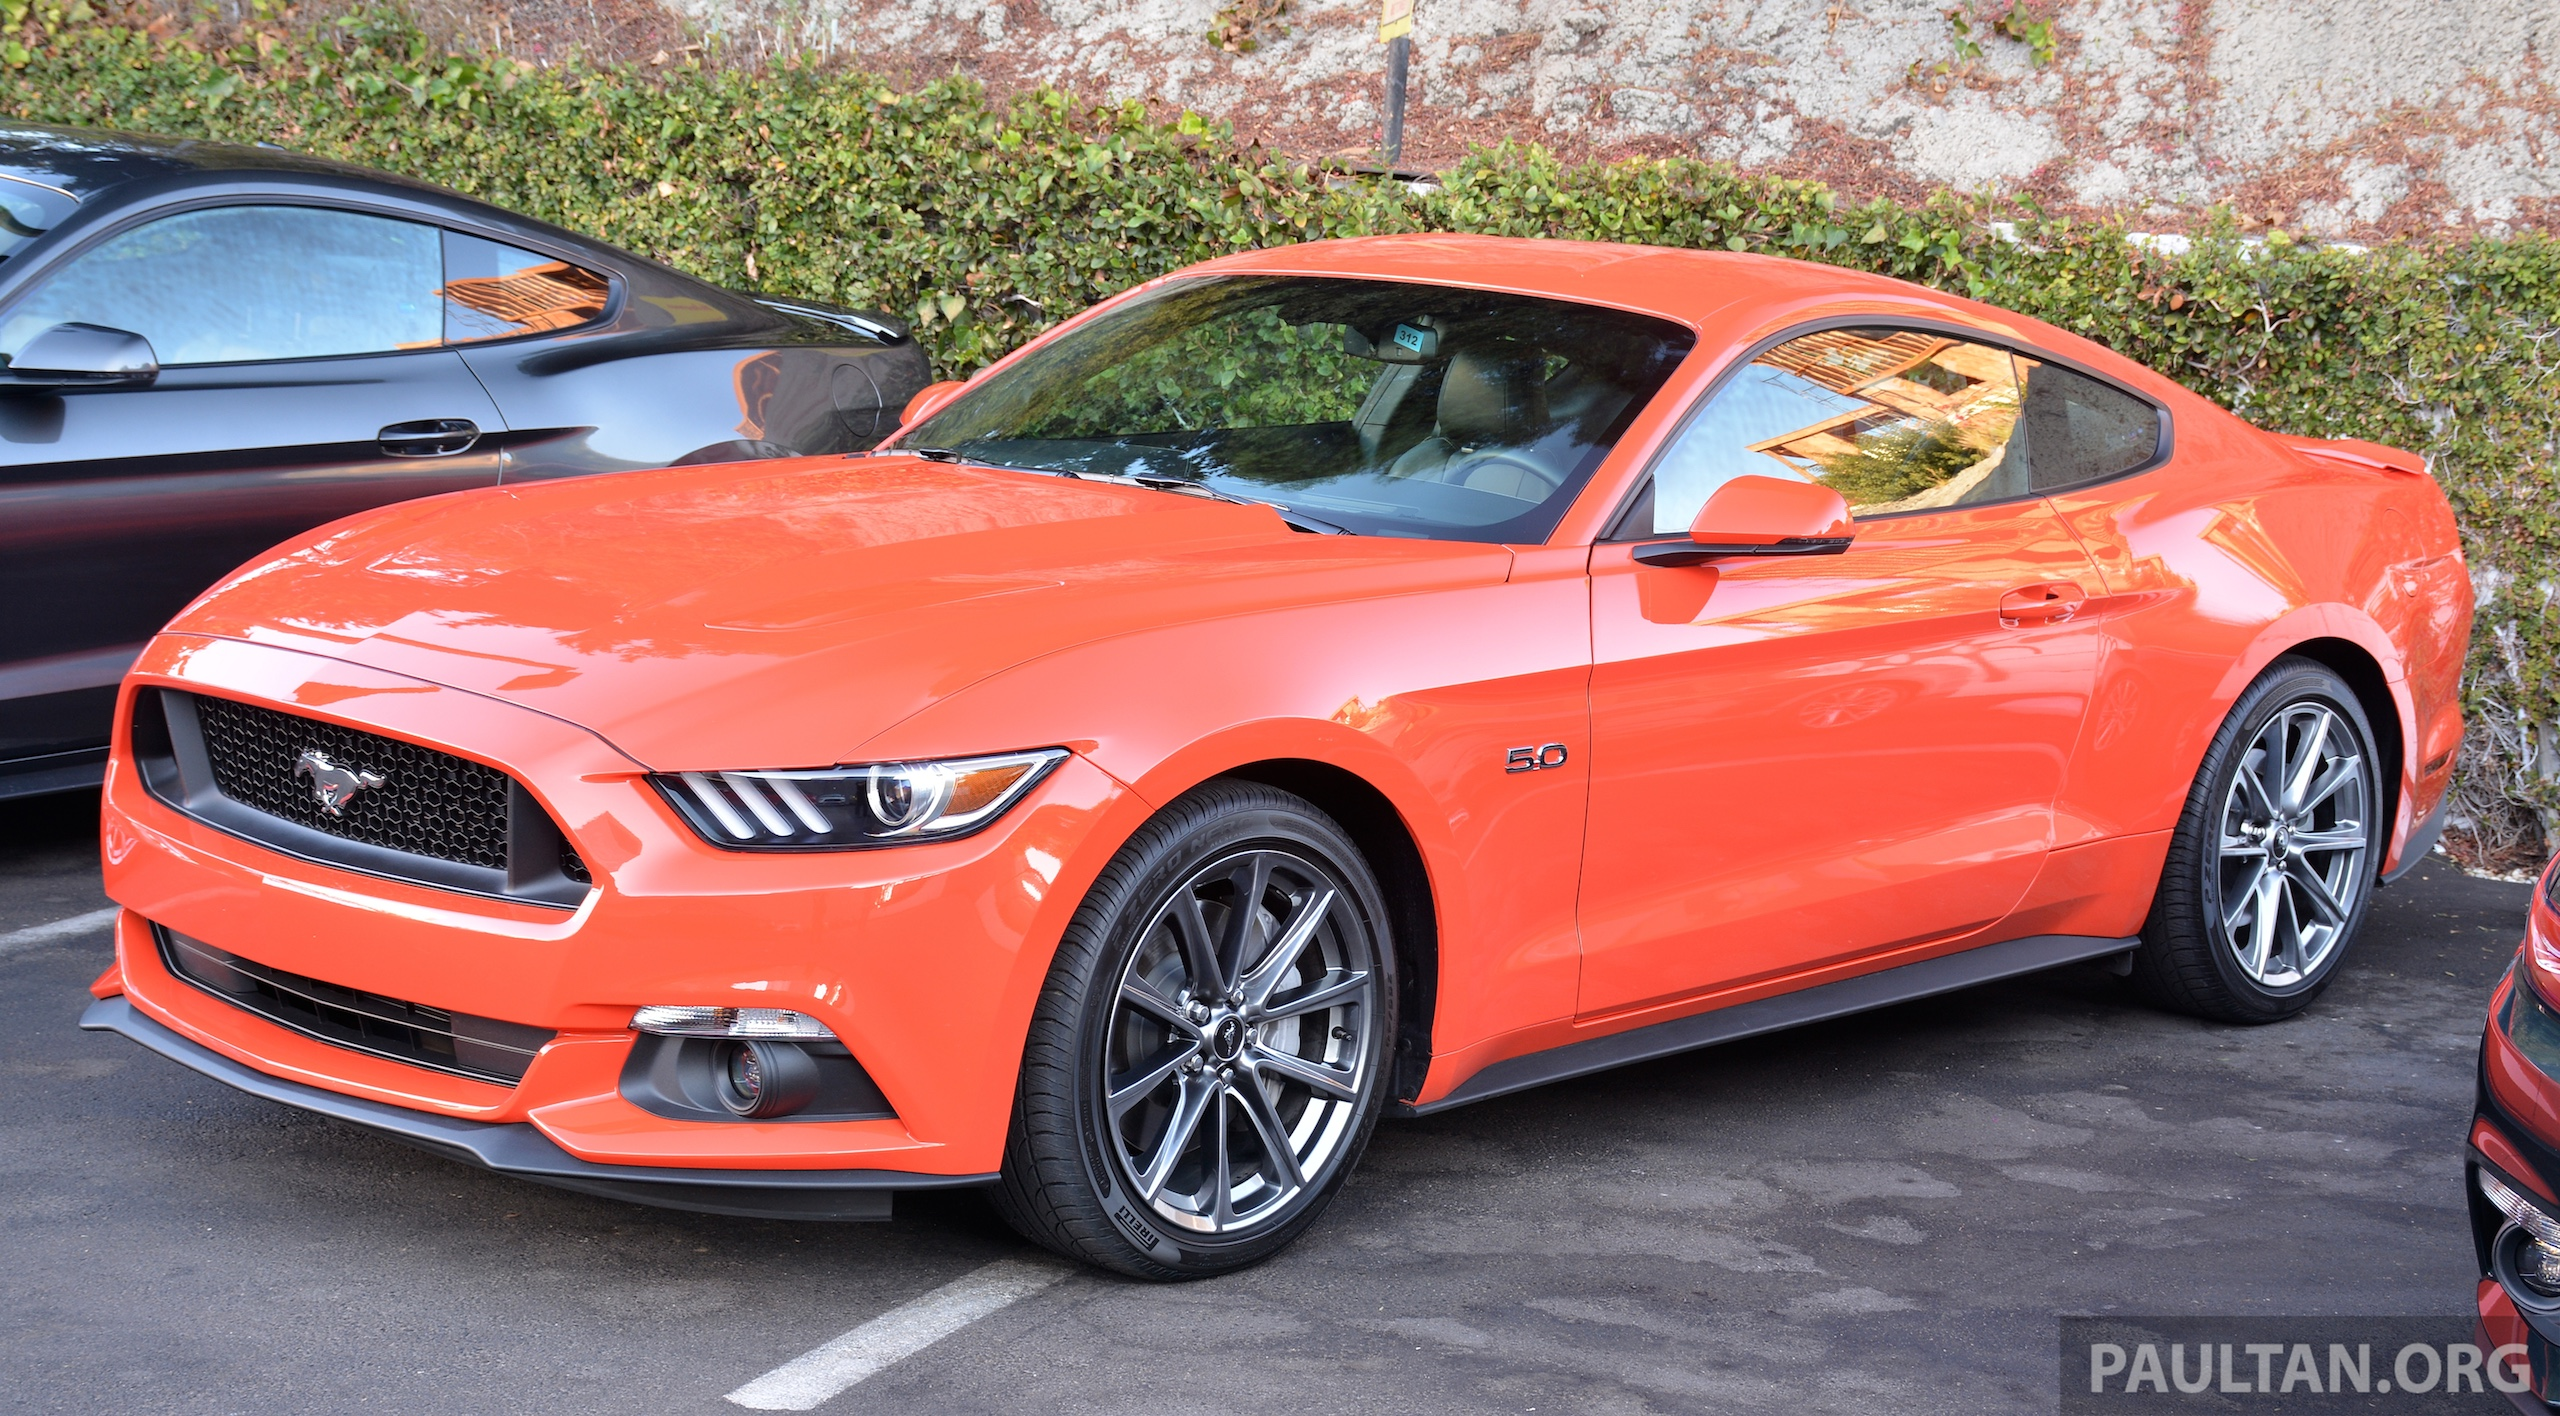 DRIVEN: 2015 Ford Mustang 2.3 EcoBoost and 5.0 GT Paul Tan - Image 310057